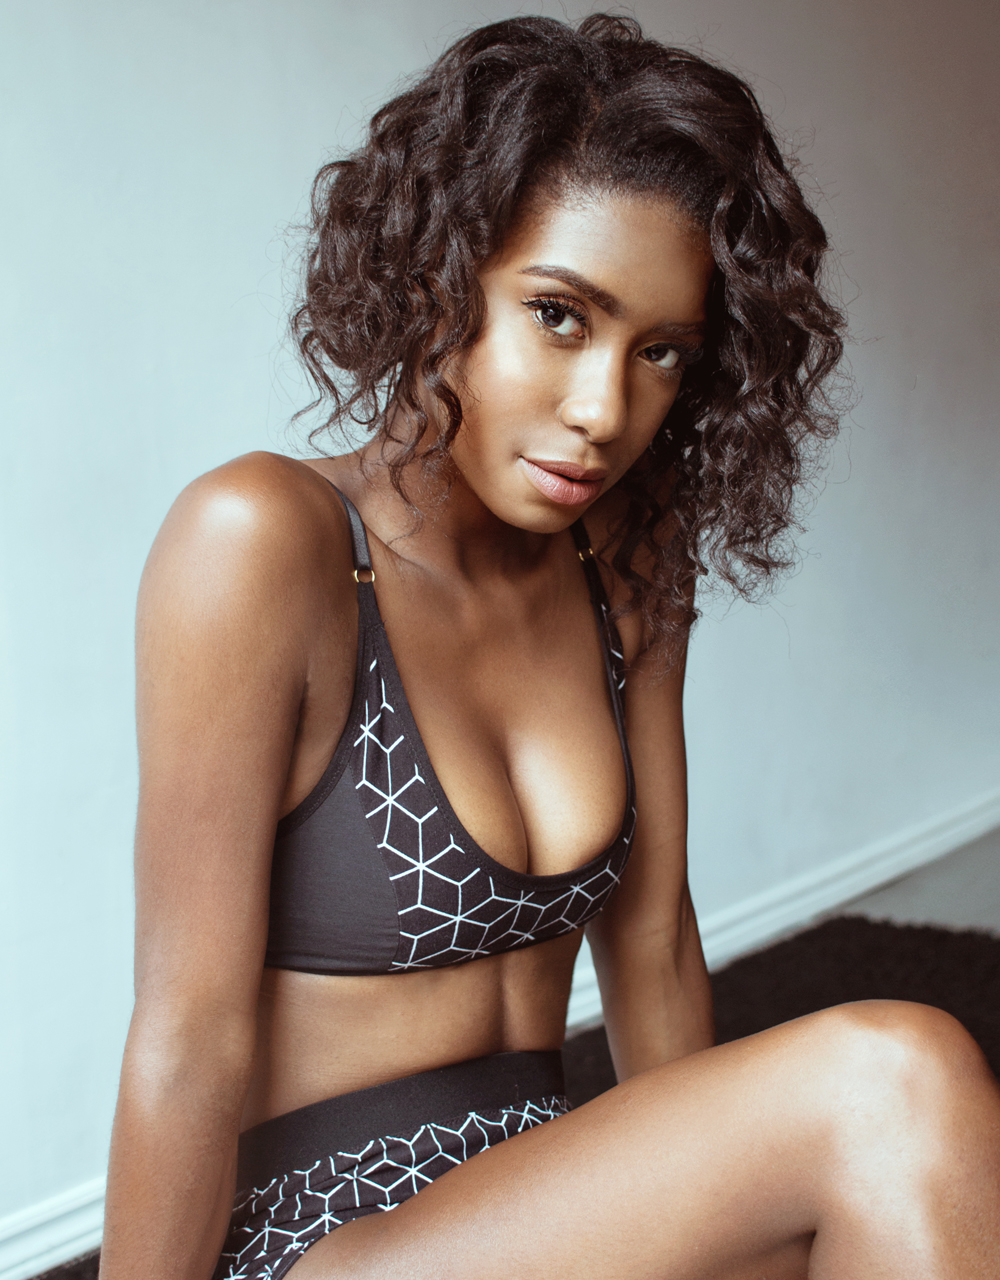 Eco Lingerie made by Tizz and Tonic | Lingerie from Bremen, Germany | Interview | Foto: Tizz and Tonic | GROSS∆RTIG